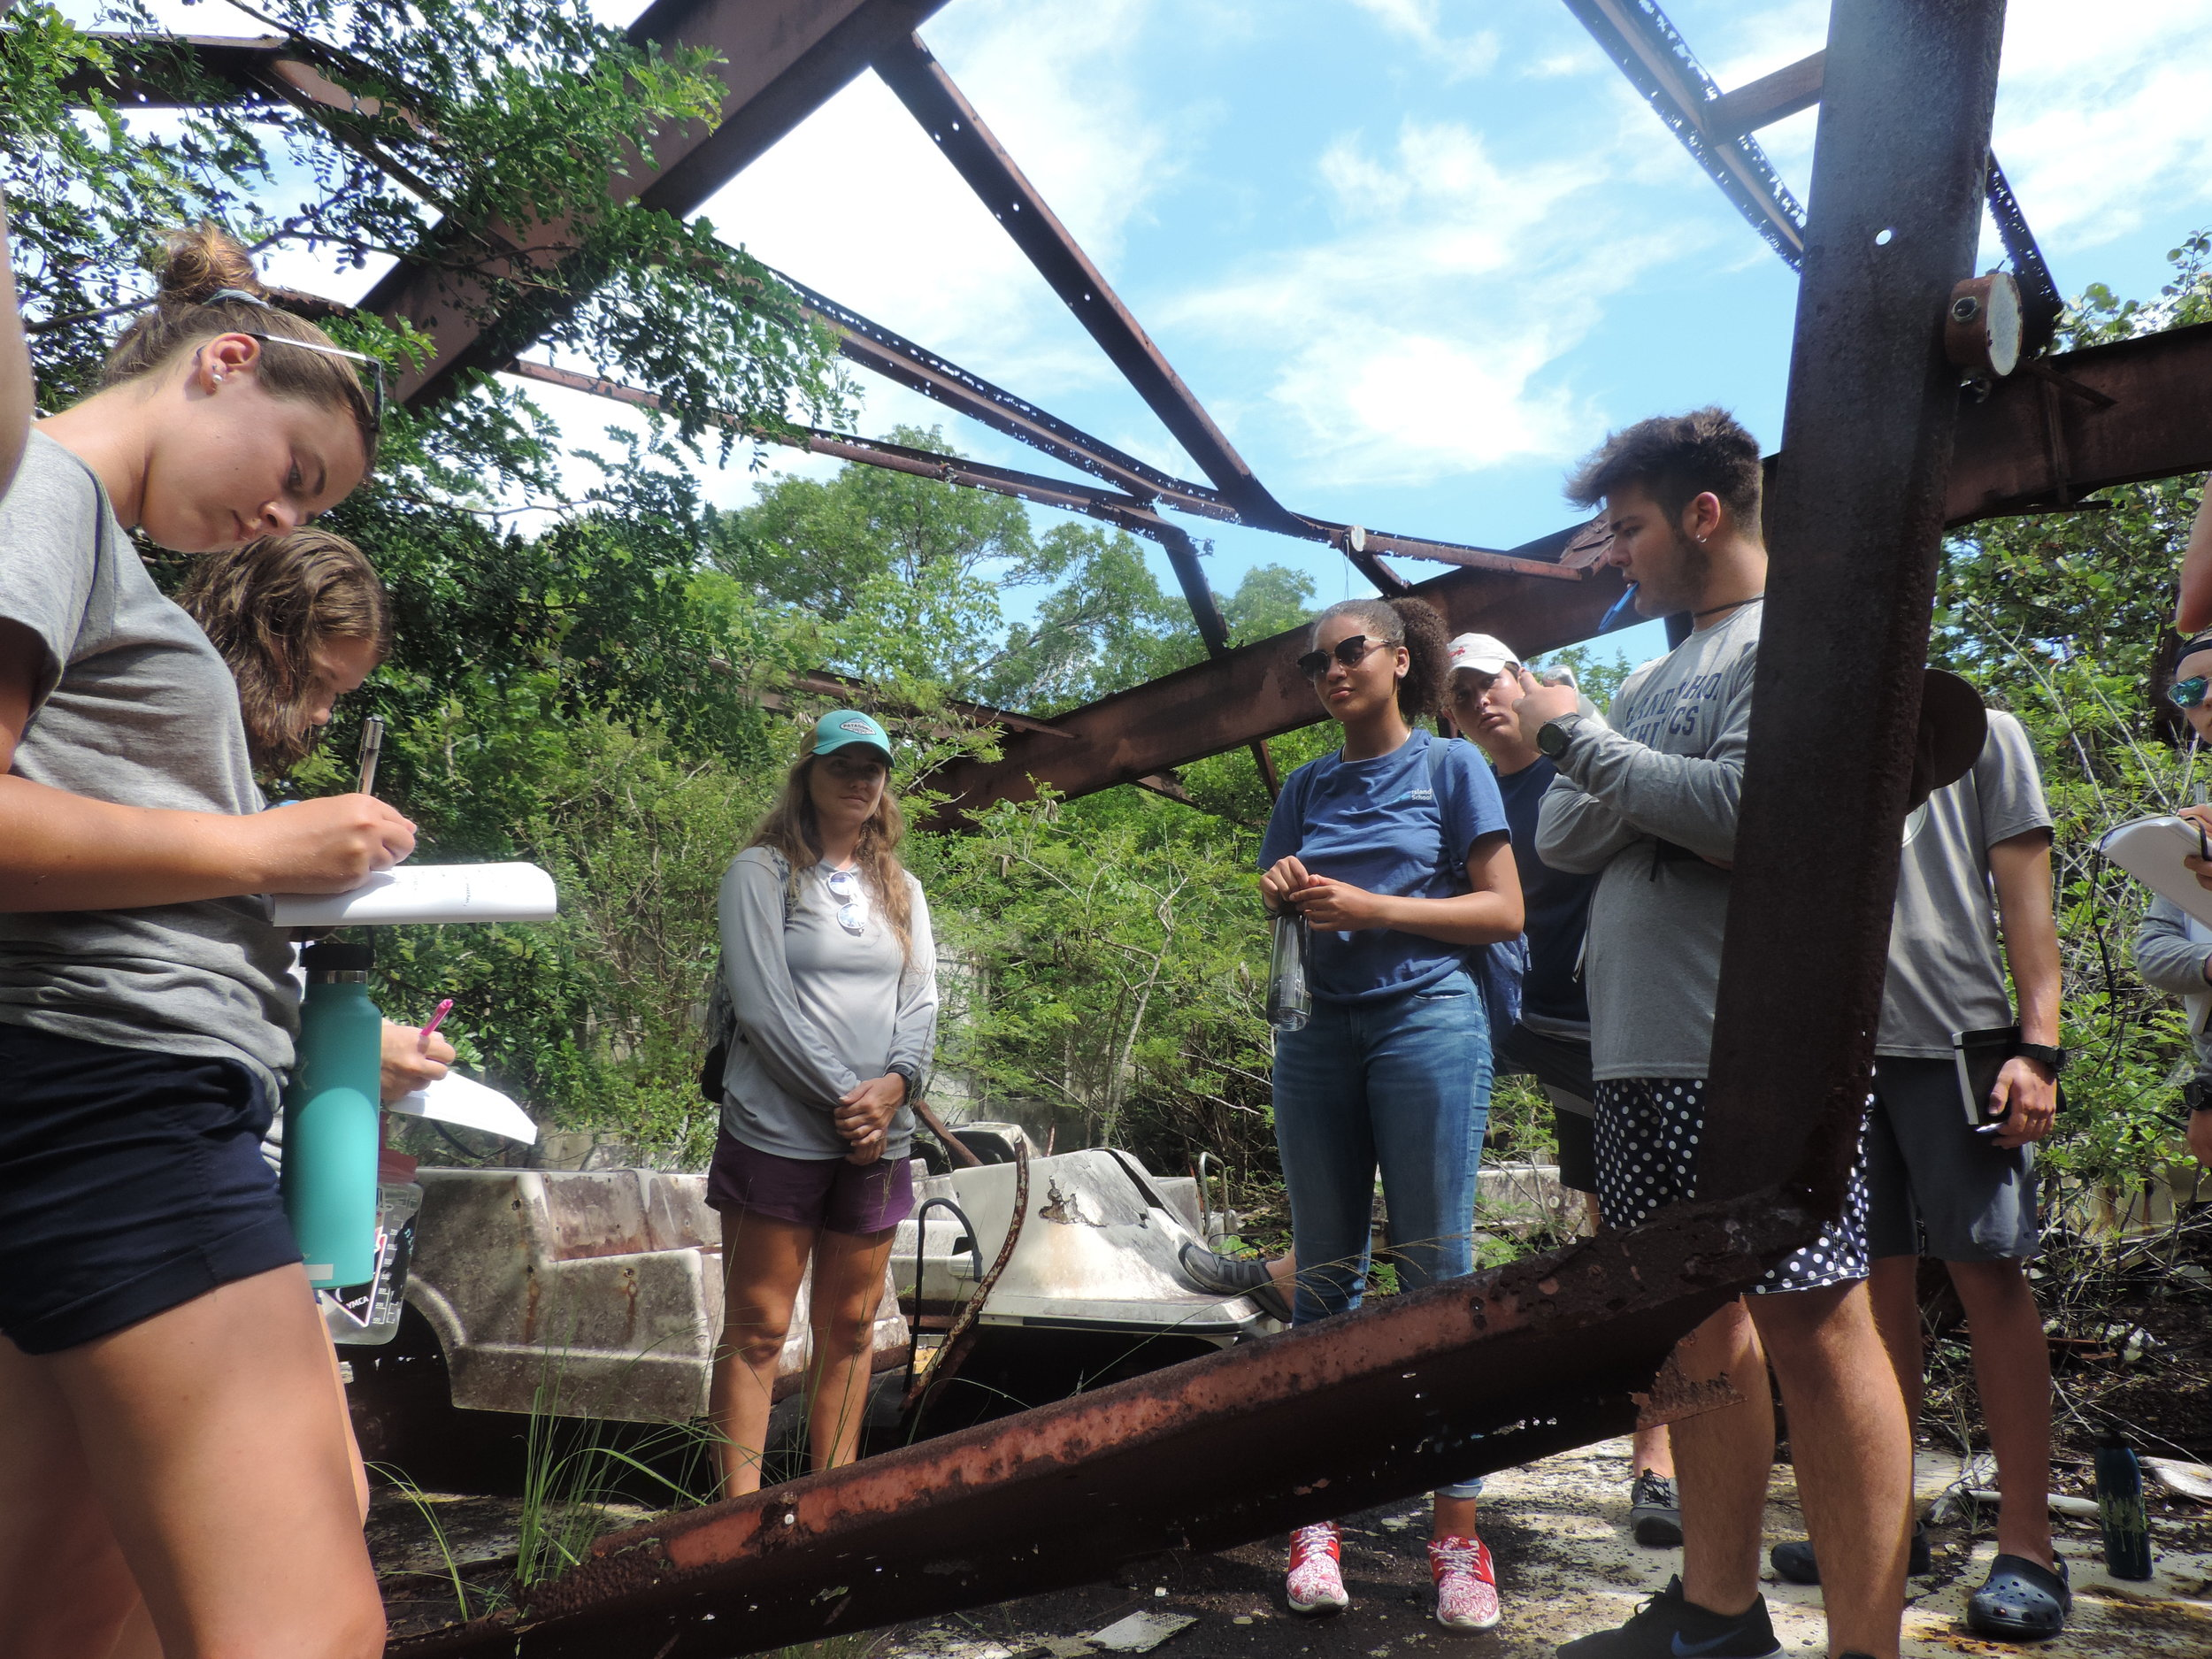 Students also visited a nearby abandoned resort where they discussed the ecological and social impact of mass development in the Bahamas.